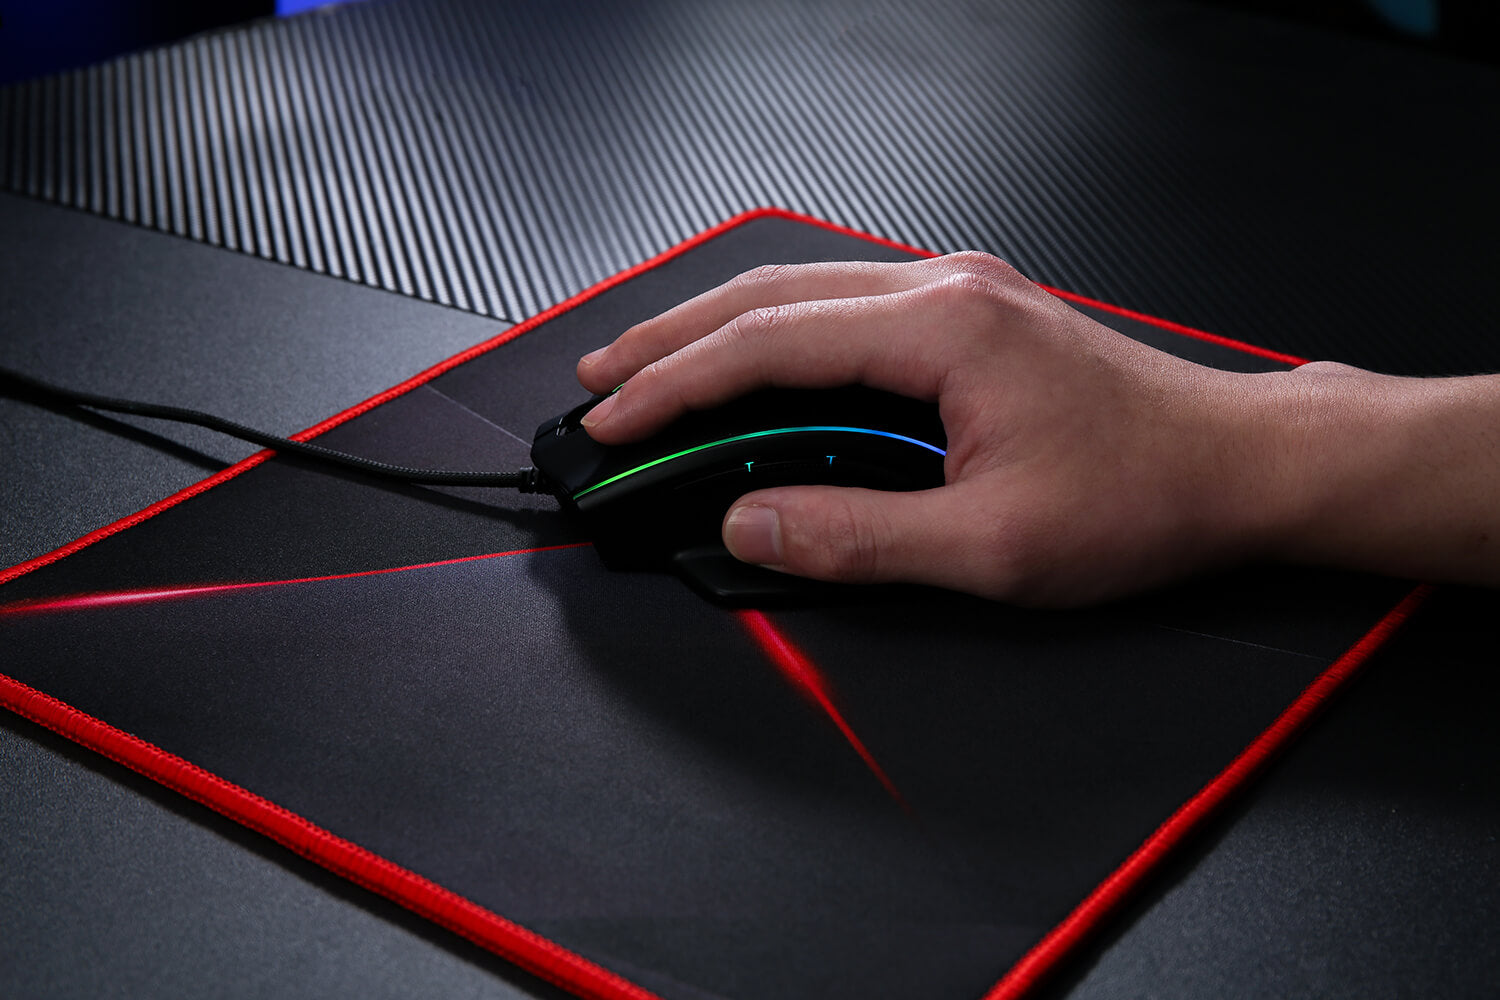 mouse pad for laptop